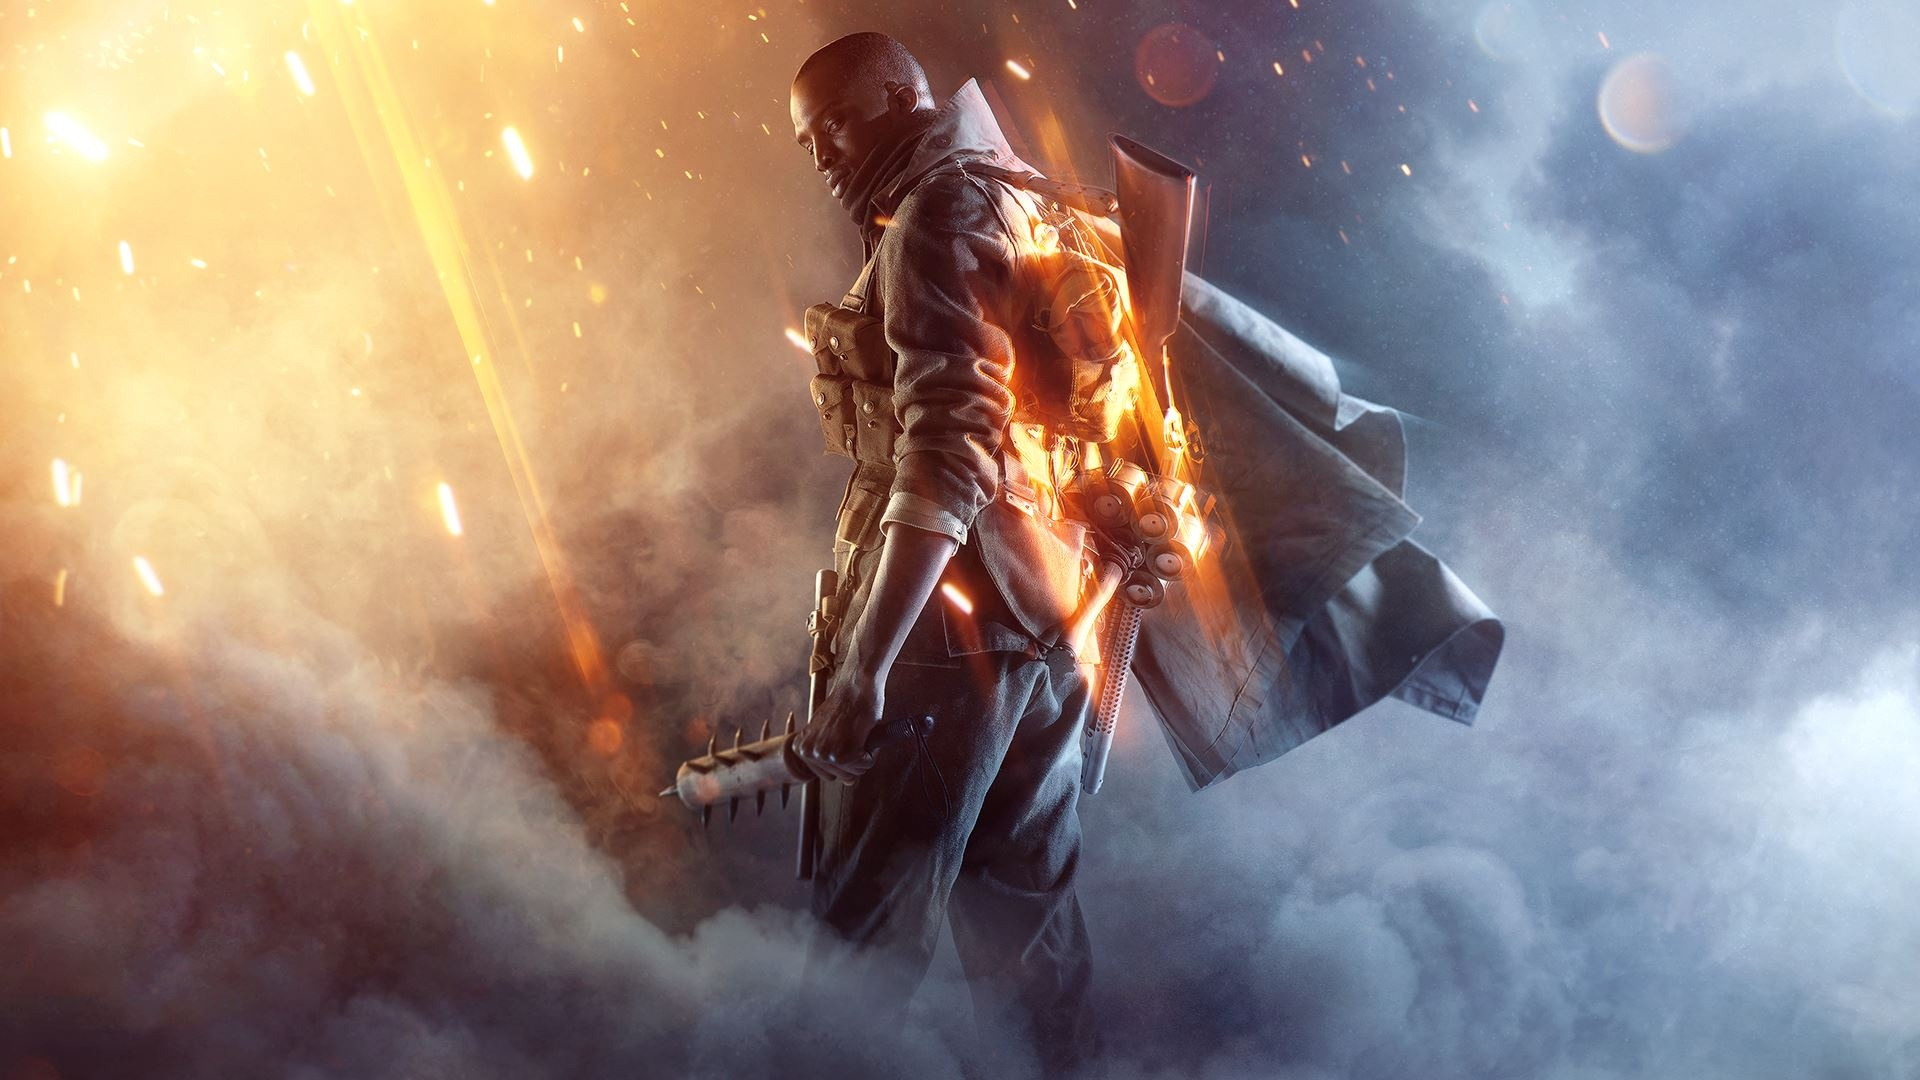 battlefield 1 pc ps4 xbox game wallpapers in jpg format for free